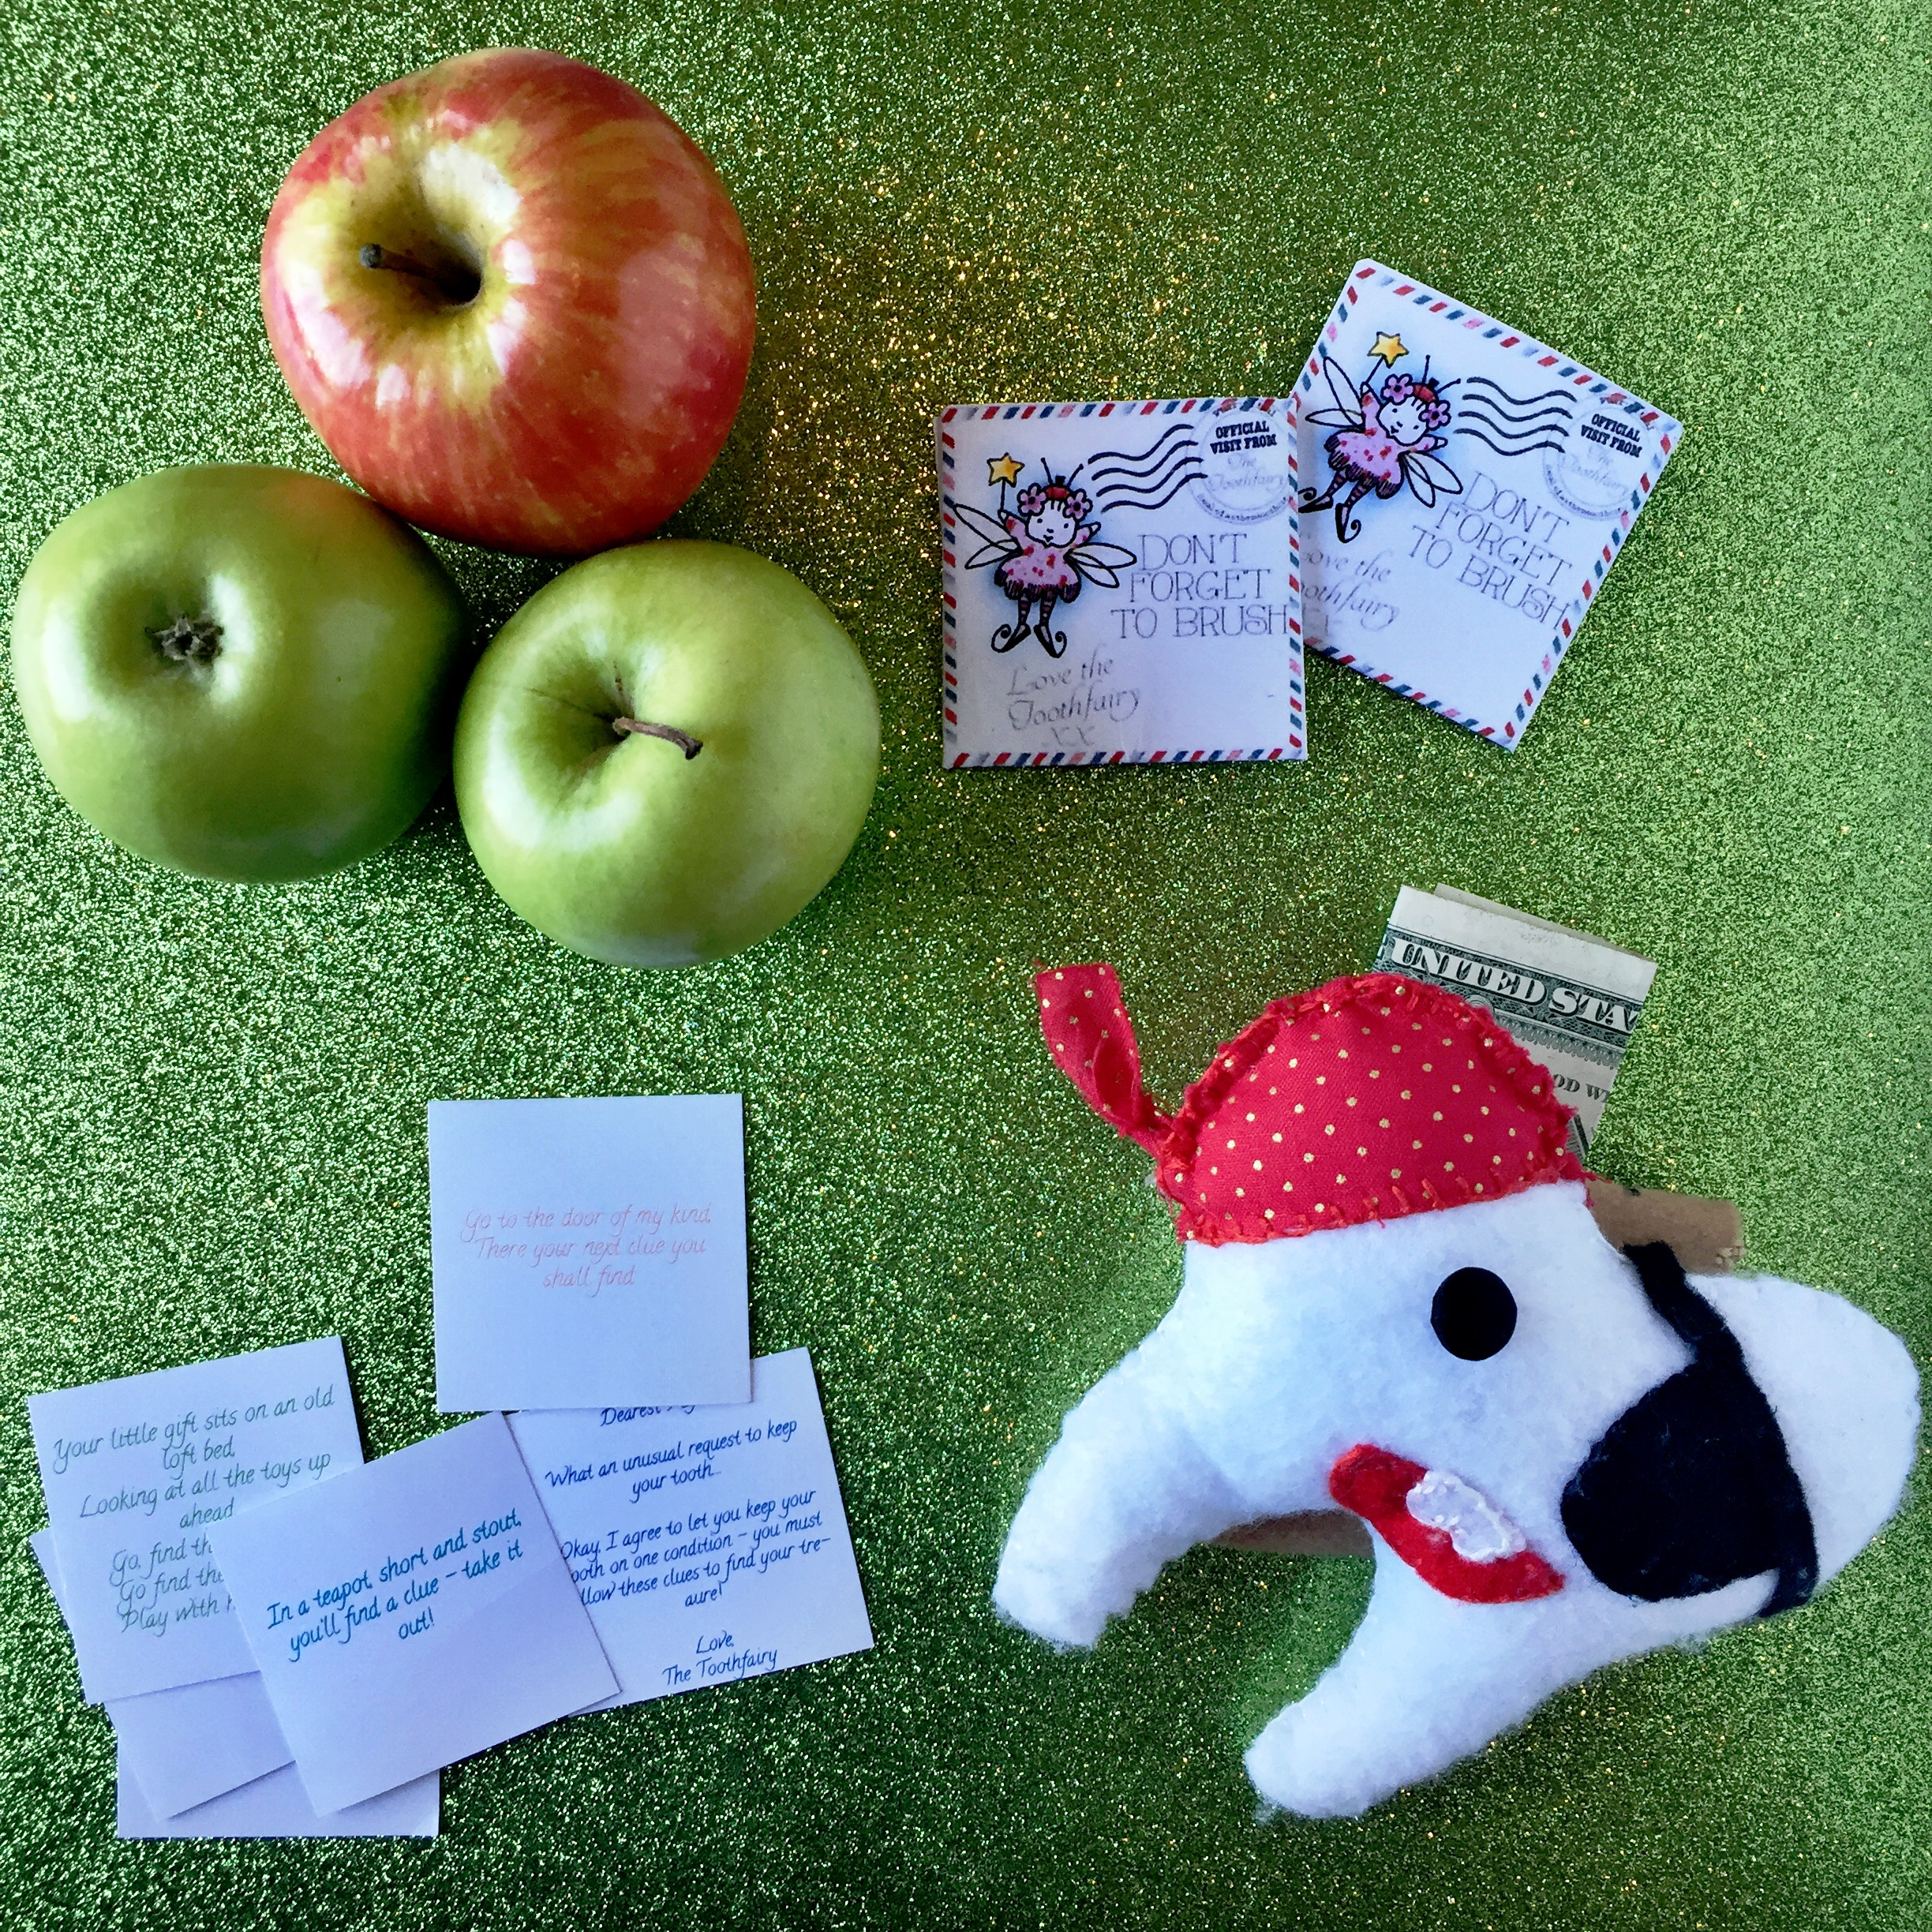 An apple a day may keep the doctor away, but it's bound to bring the Tooth Fairy at least once!